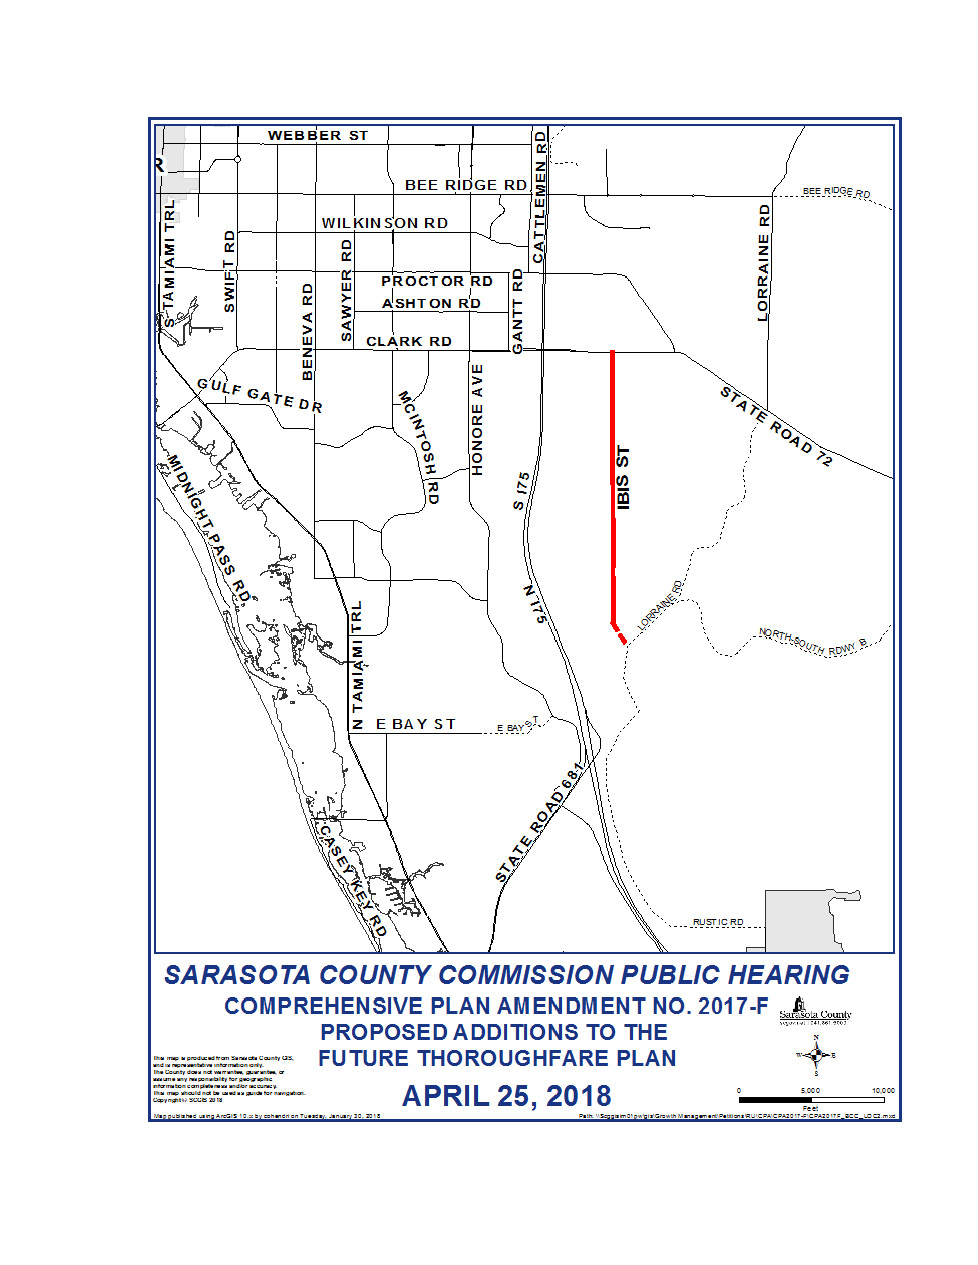 Citizens for Sarasota County: A Road to Nowhere